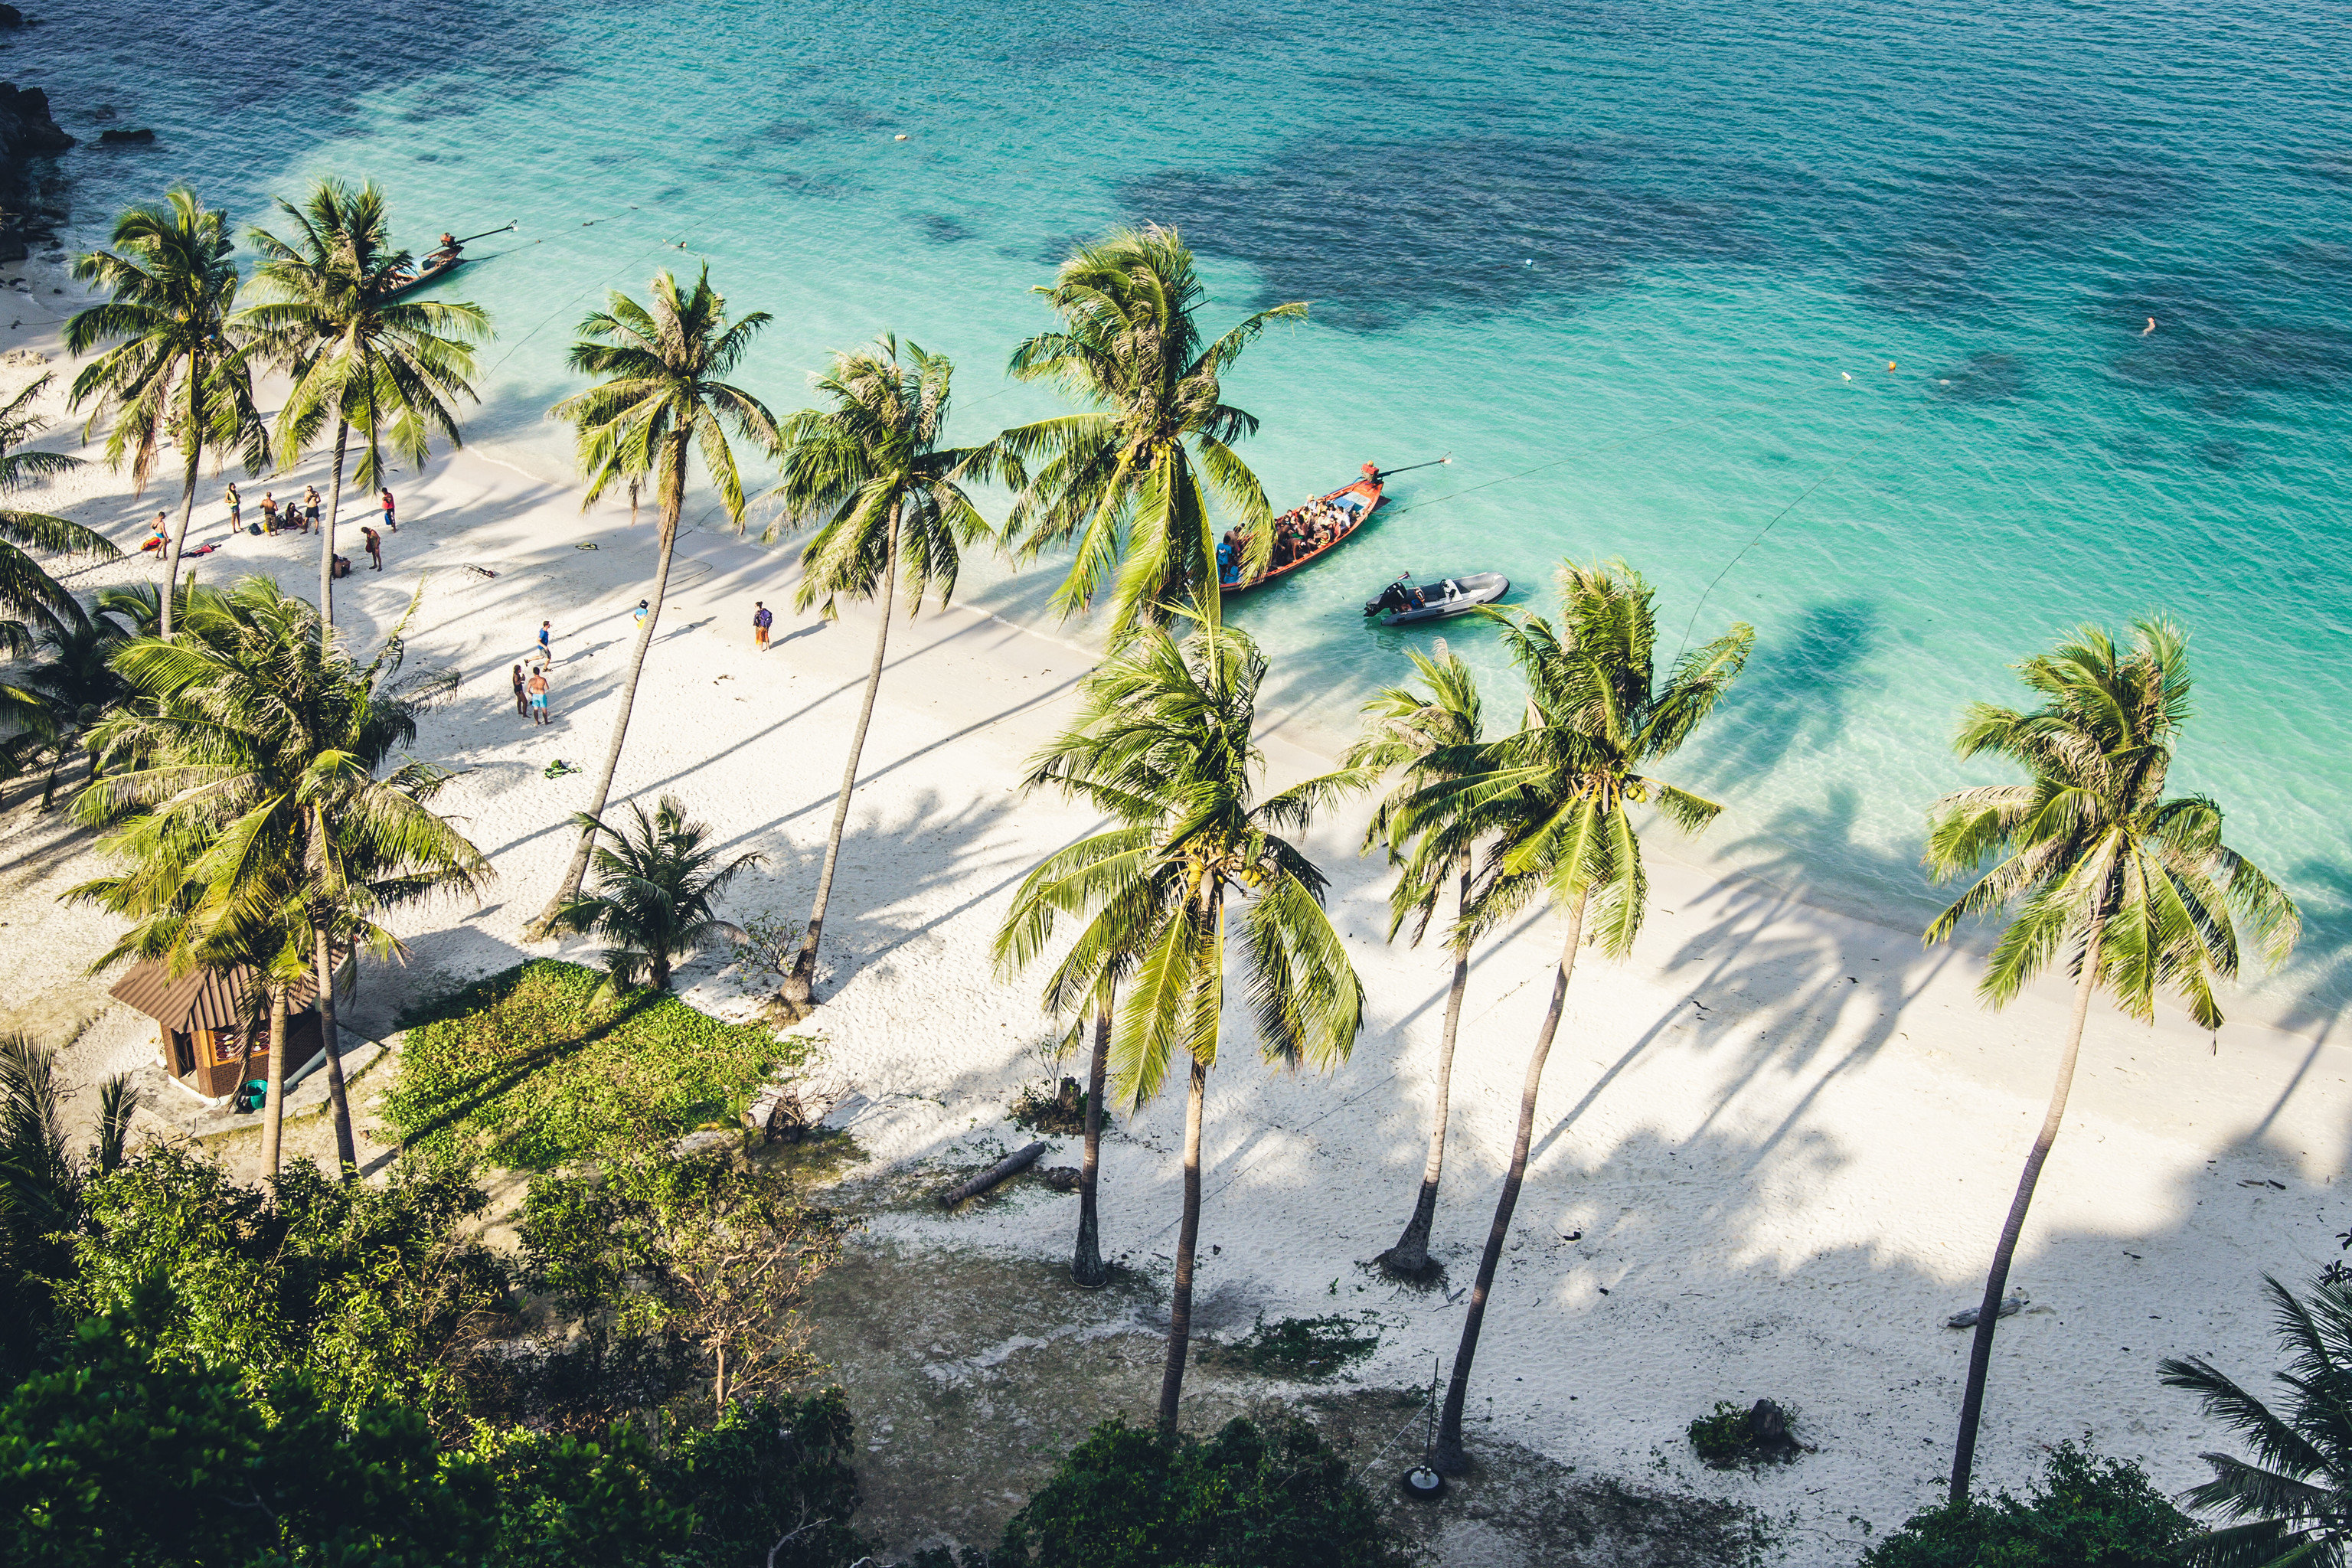 Budget Hotels Jetsetter Guides Trip Ideas tree outdoor water flora palm Sea arecales Coast Nature Ocean tropics Beach palm family terrain Jungle caribbean flower plant lined shore surrounded